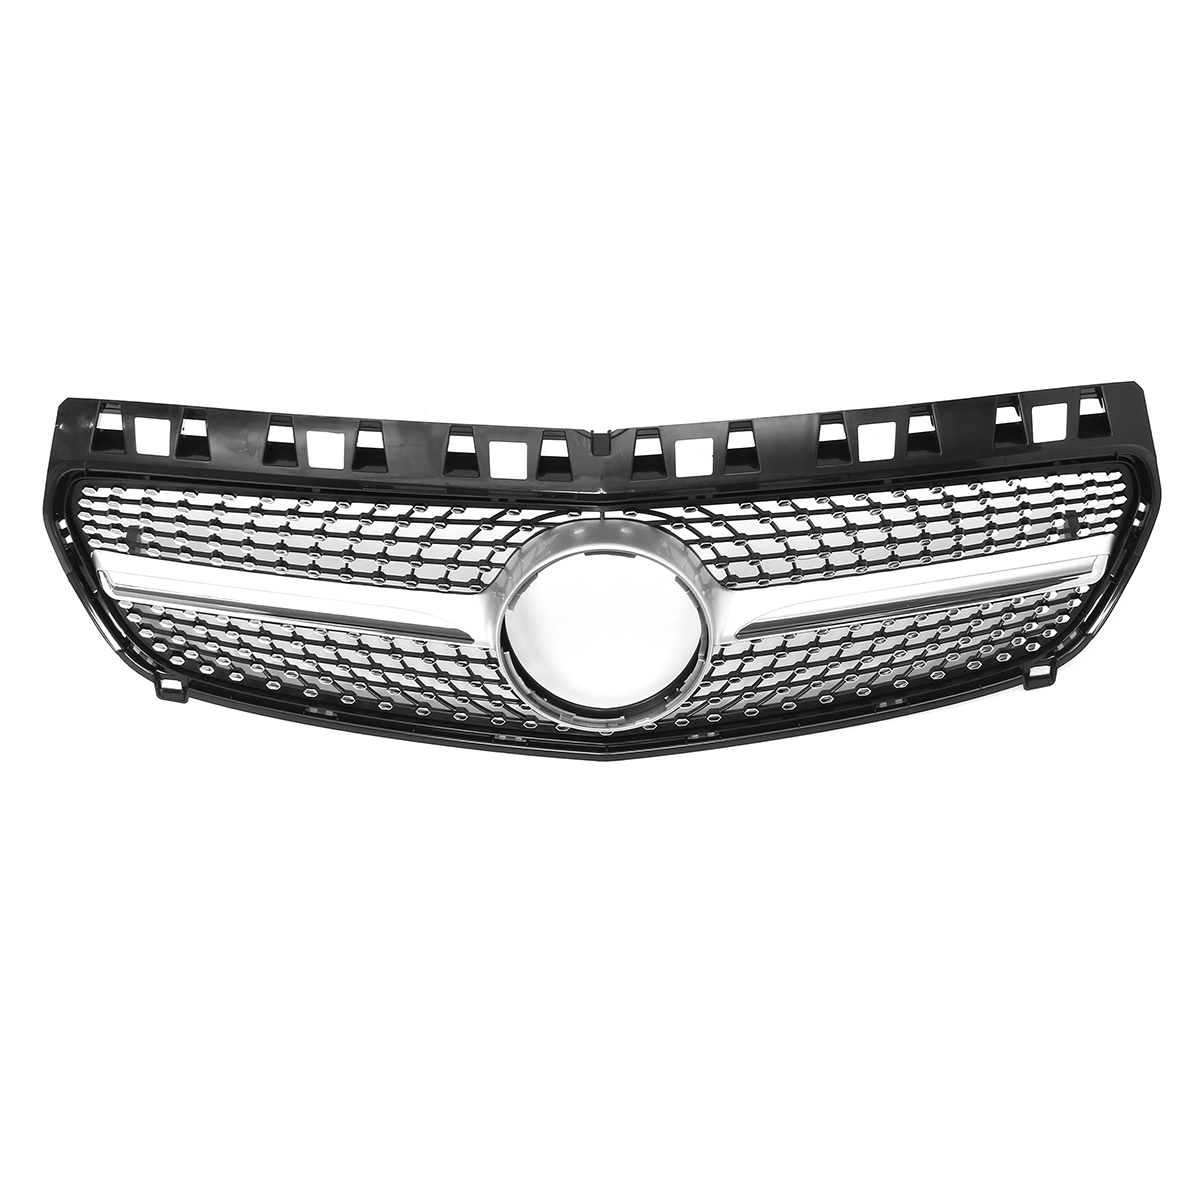 Front Grille Grill For Mercedes Benz W176 A Class Black Diamond Design 2013-15